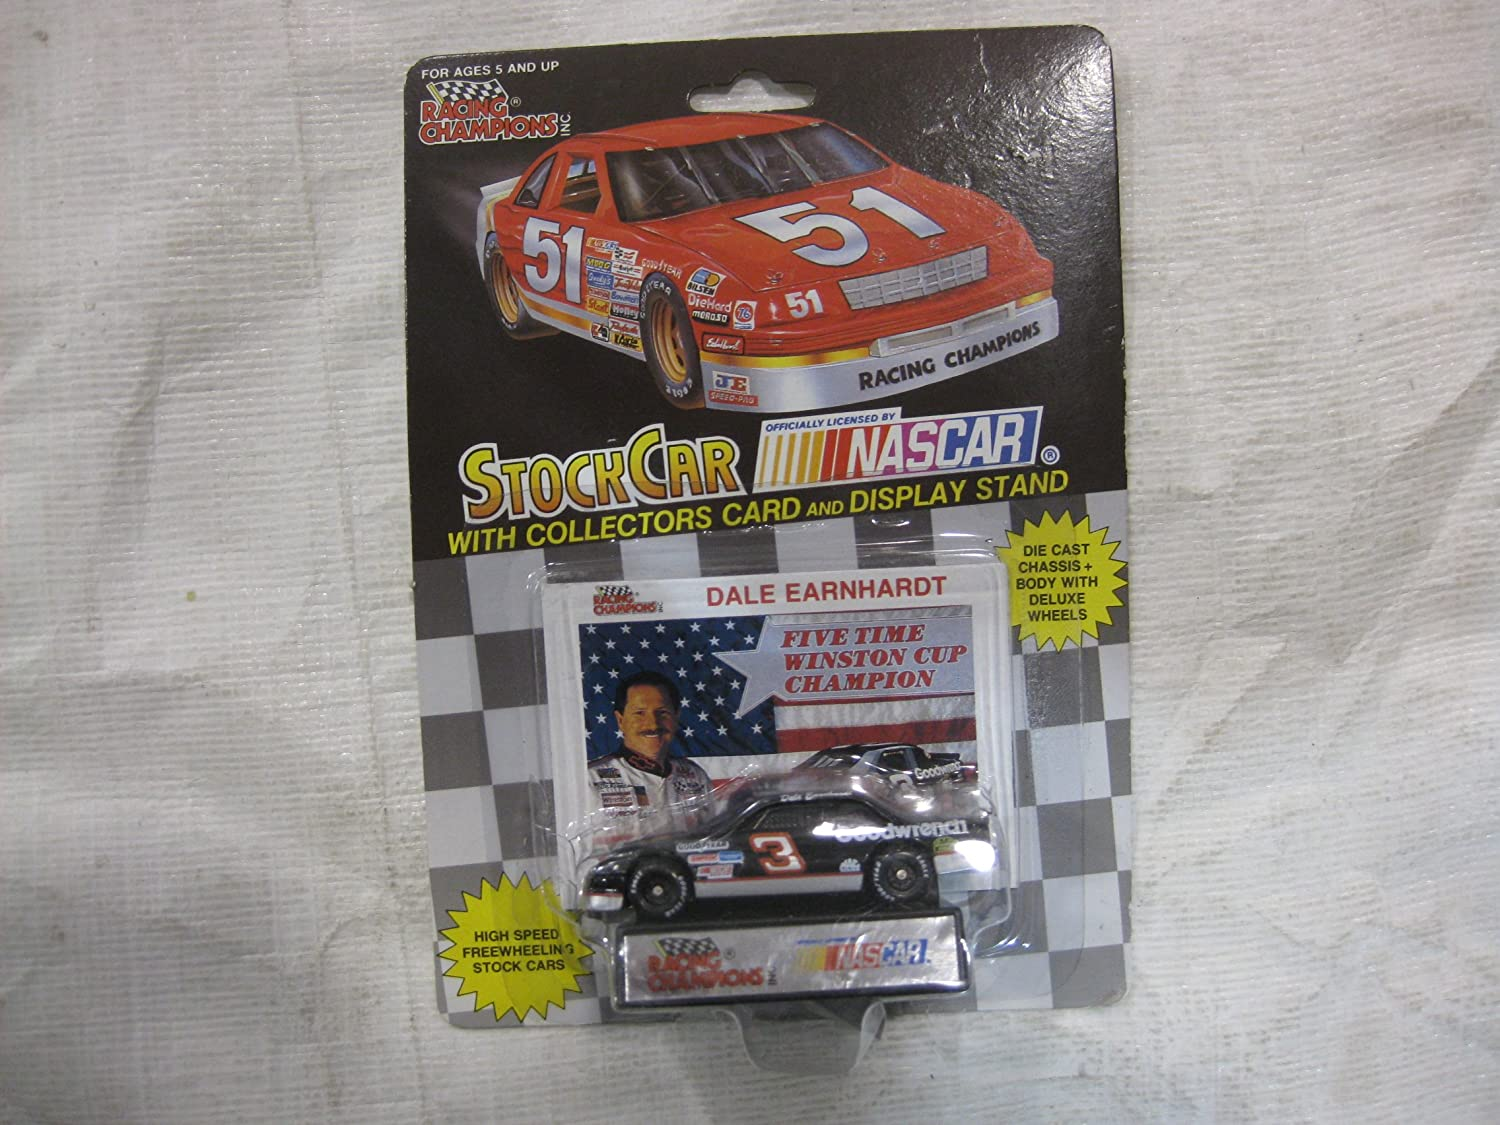 NASCAR #3 Dale Earnhardt, Sr. Five Time Winston Cup Champion Goodwrench Racing Team Stock Car With Driver's Collectors Card And Display Stand. Racing Champions Black Background Red Series 51 Car